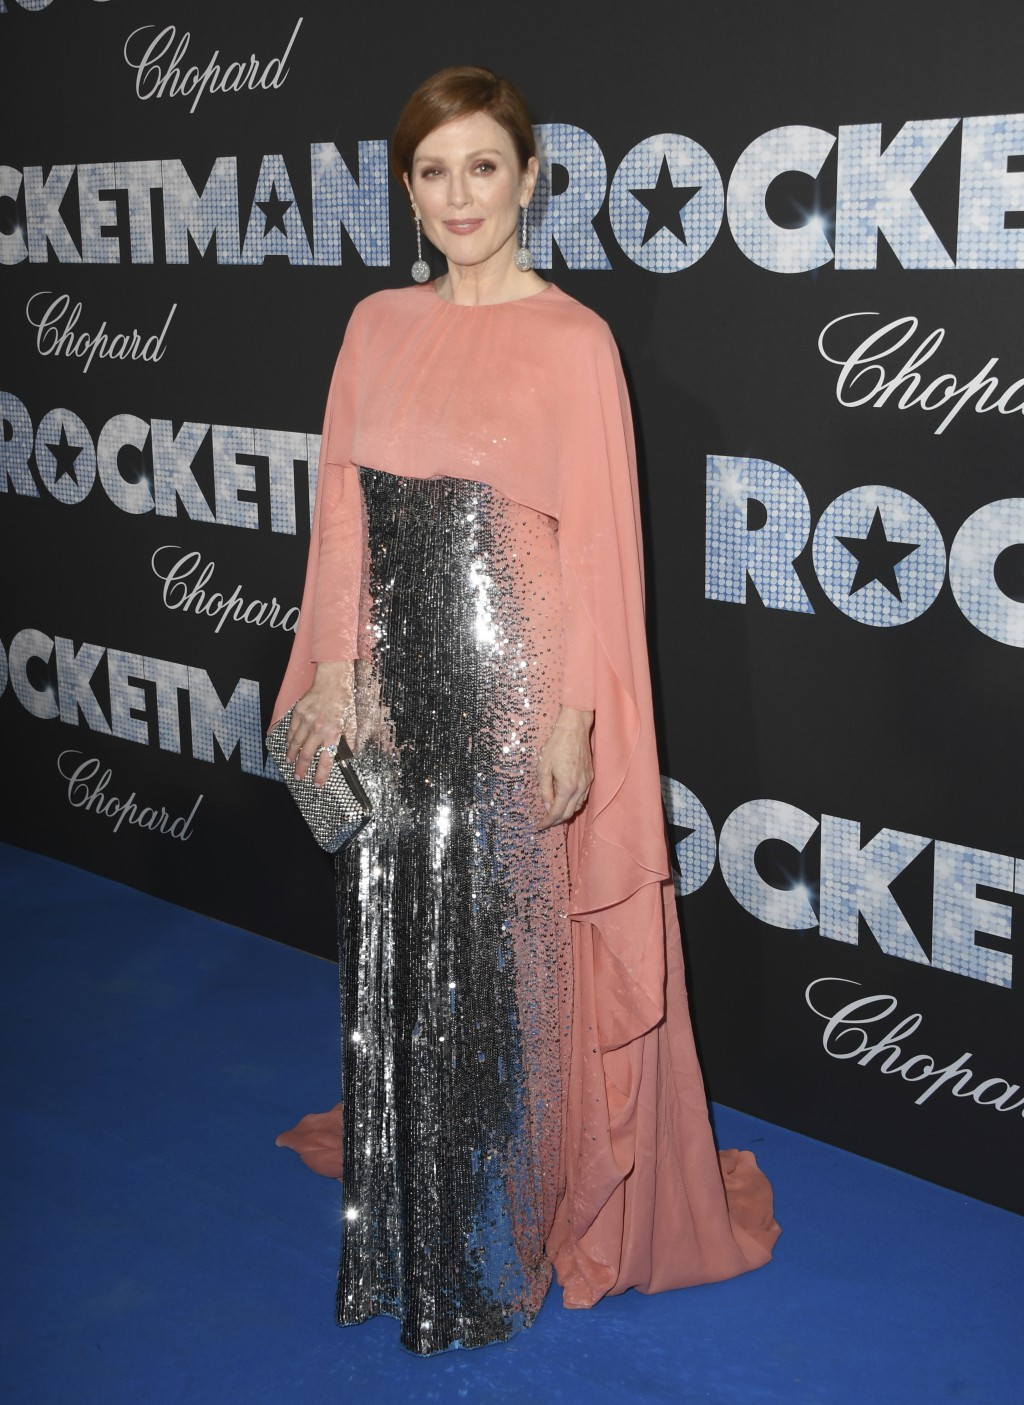 Actress Julianne Moore poses for photographers upon arrival at the party for the film Rocketman at the 72nd international film festival, Cannes, south